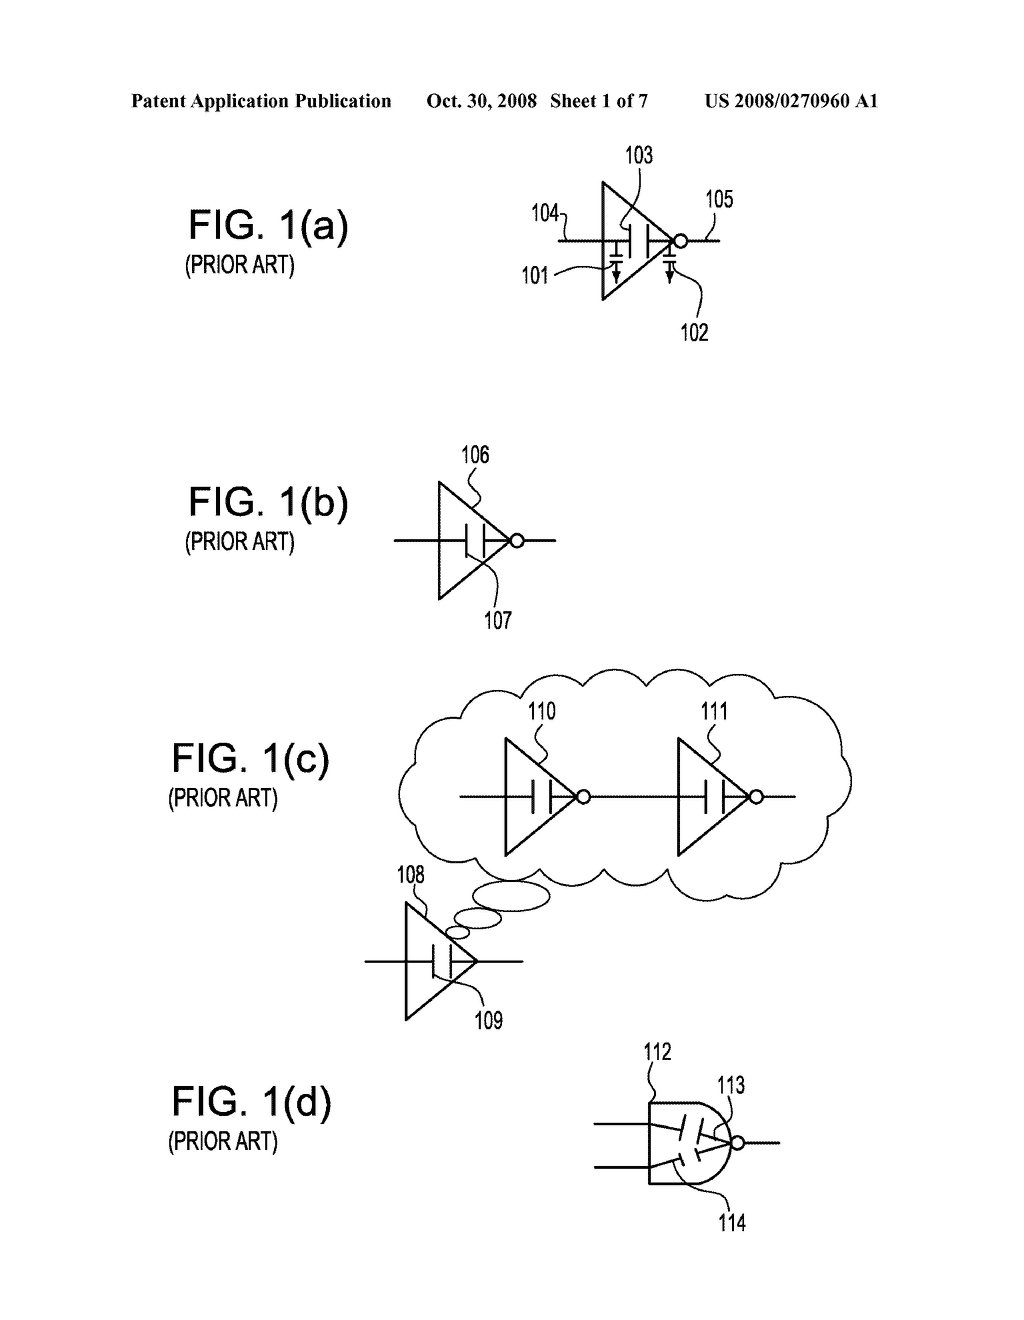 METHOD FOR INCORPORATING MILLER CAPACITANCE EFFECTS IN DIGITAL CIRCUITS FOR AN ACCURATE TIMING ANALYSIS - diagram, schematic, and image 02